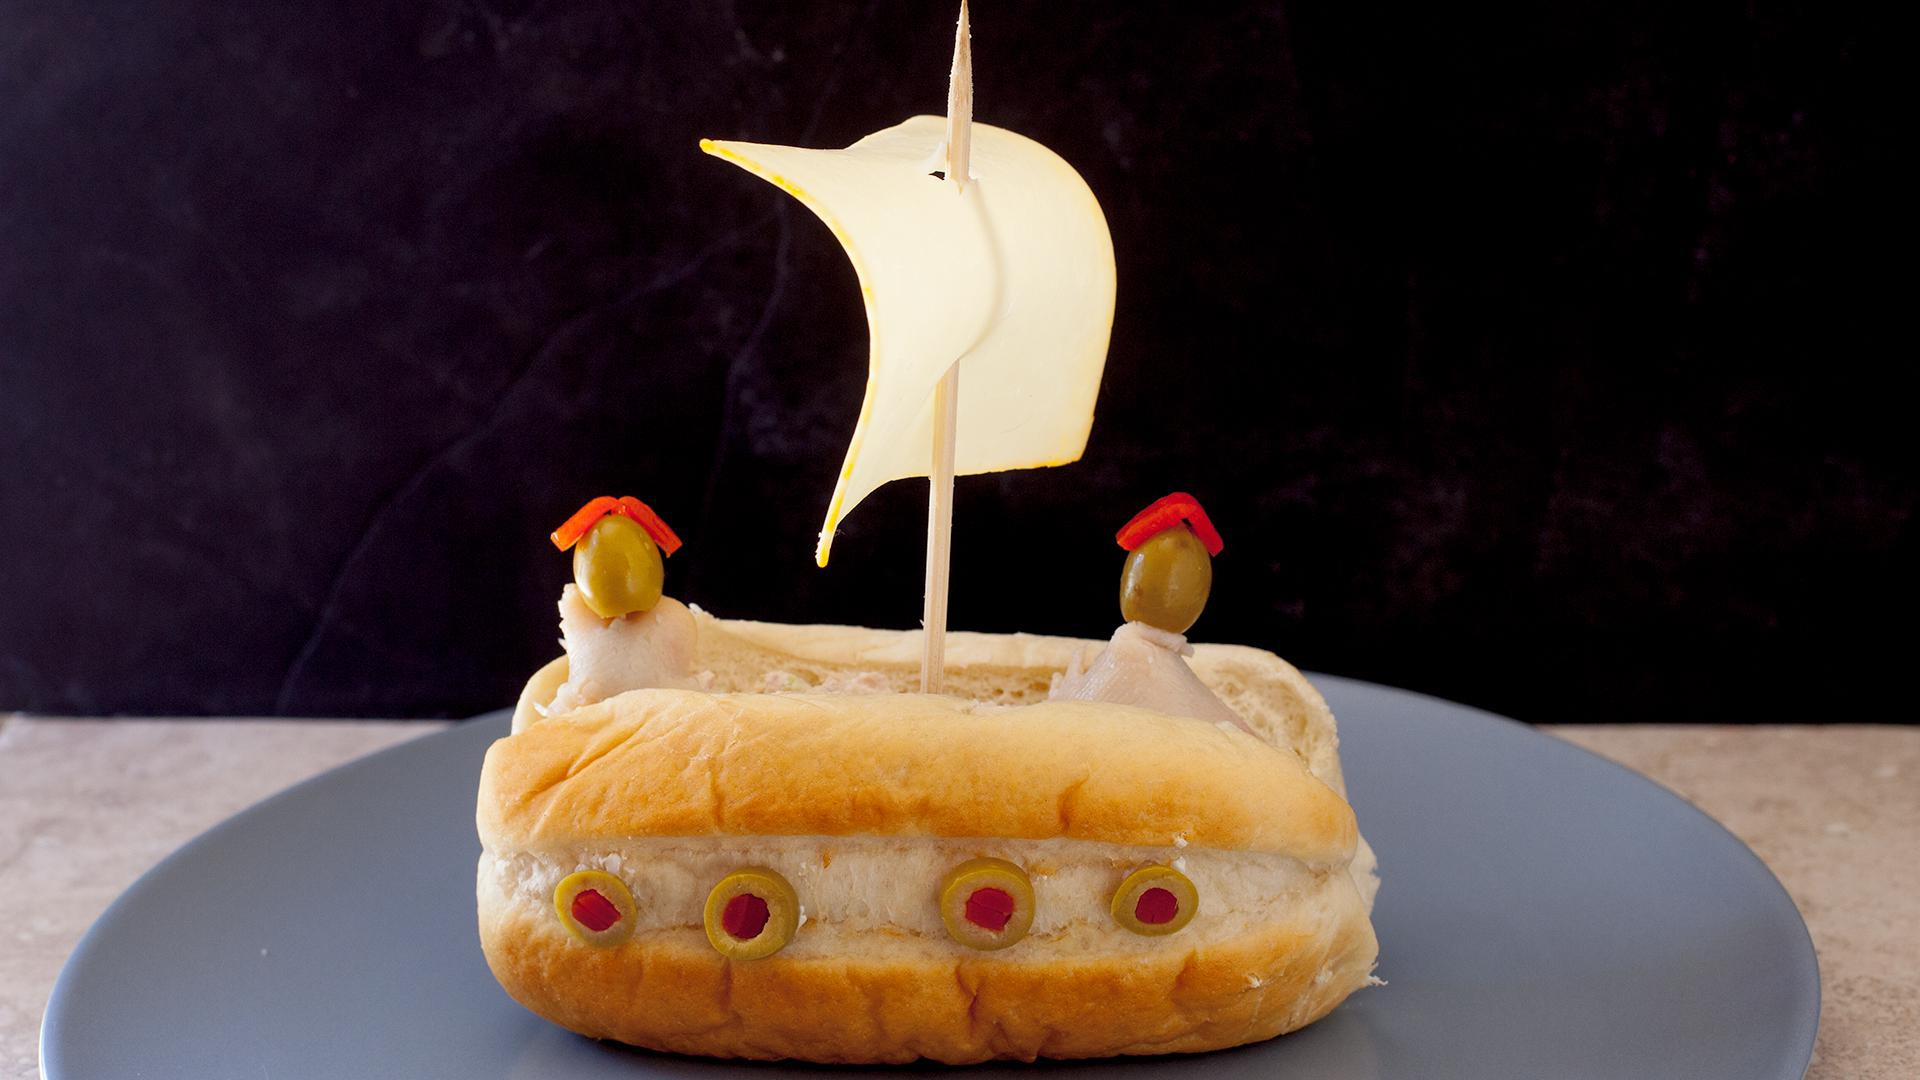 How to turn a tuna sandwich into a pirate ship